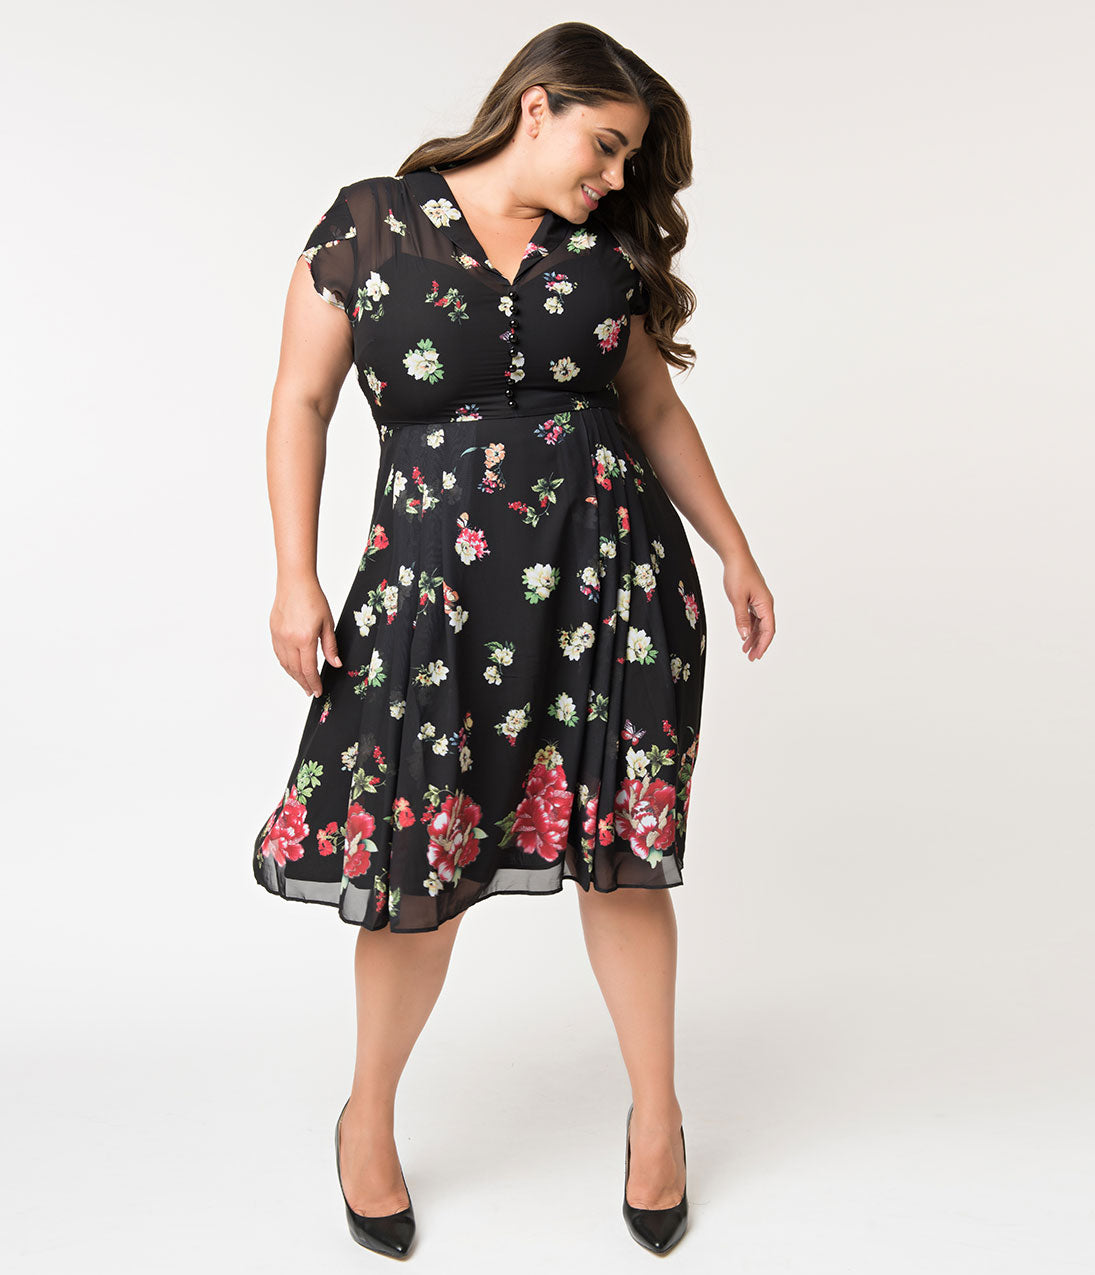 1940s Dresses | 40s Dress, Swing Dress Hell Bunny Plus Size Black Floral Jolie Papillon Chiffon Swing Dress $50.00 AT vintagedancer.com